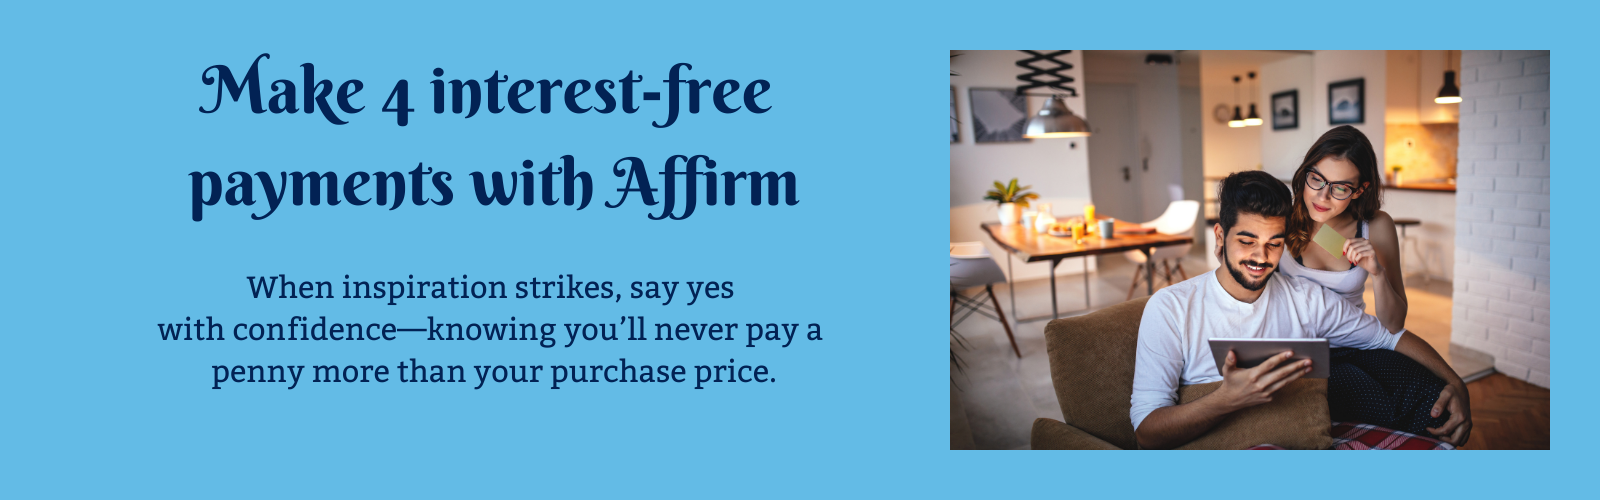 Make 4 interest-free payments with Affirm